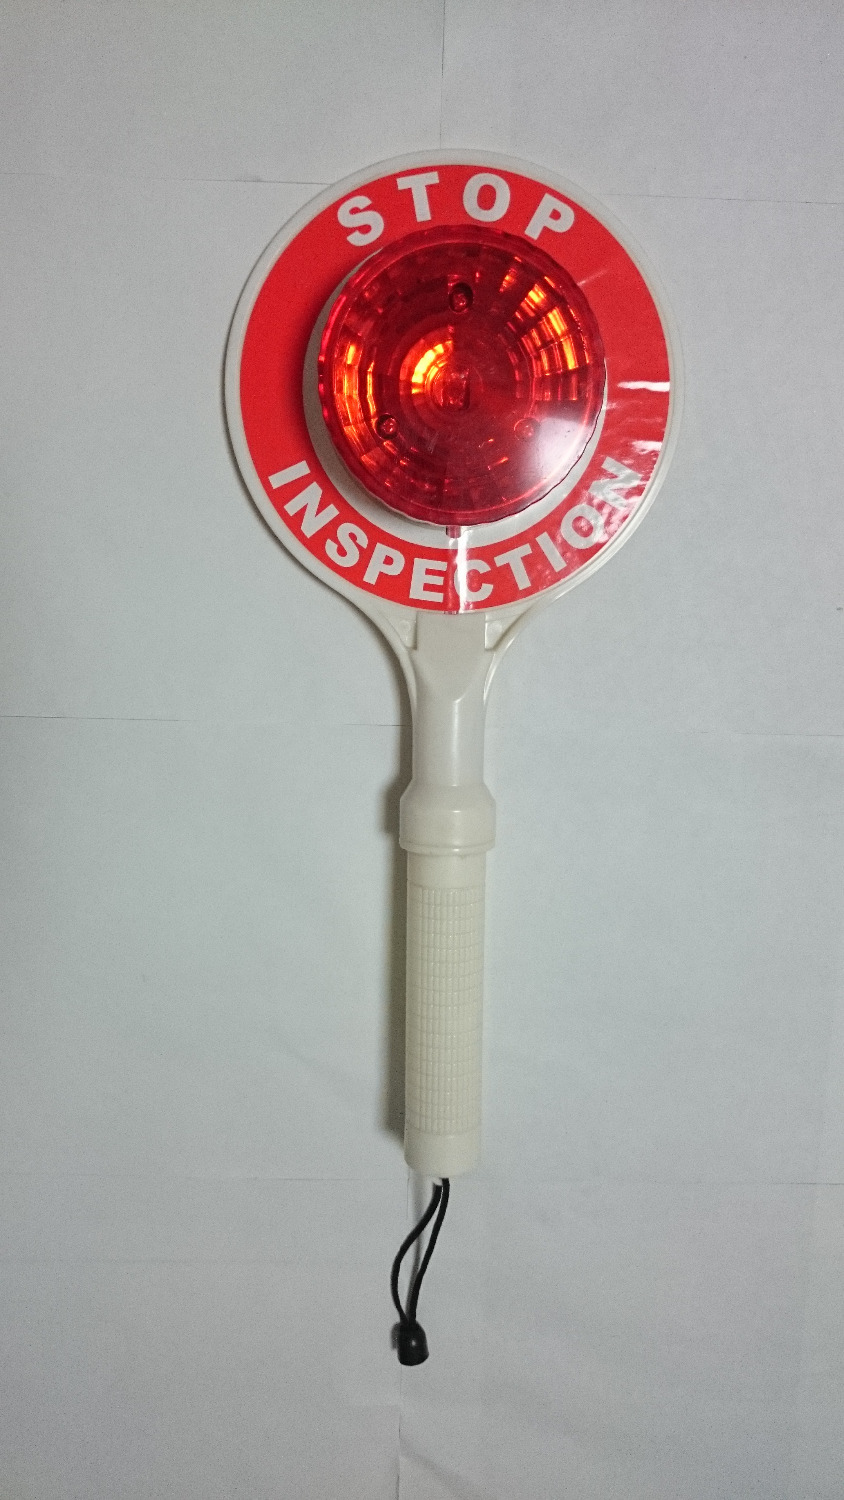 Roadway Displays Construction Traffic Control Flashing LED Hand Held Stop Sign(China (Mainland))